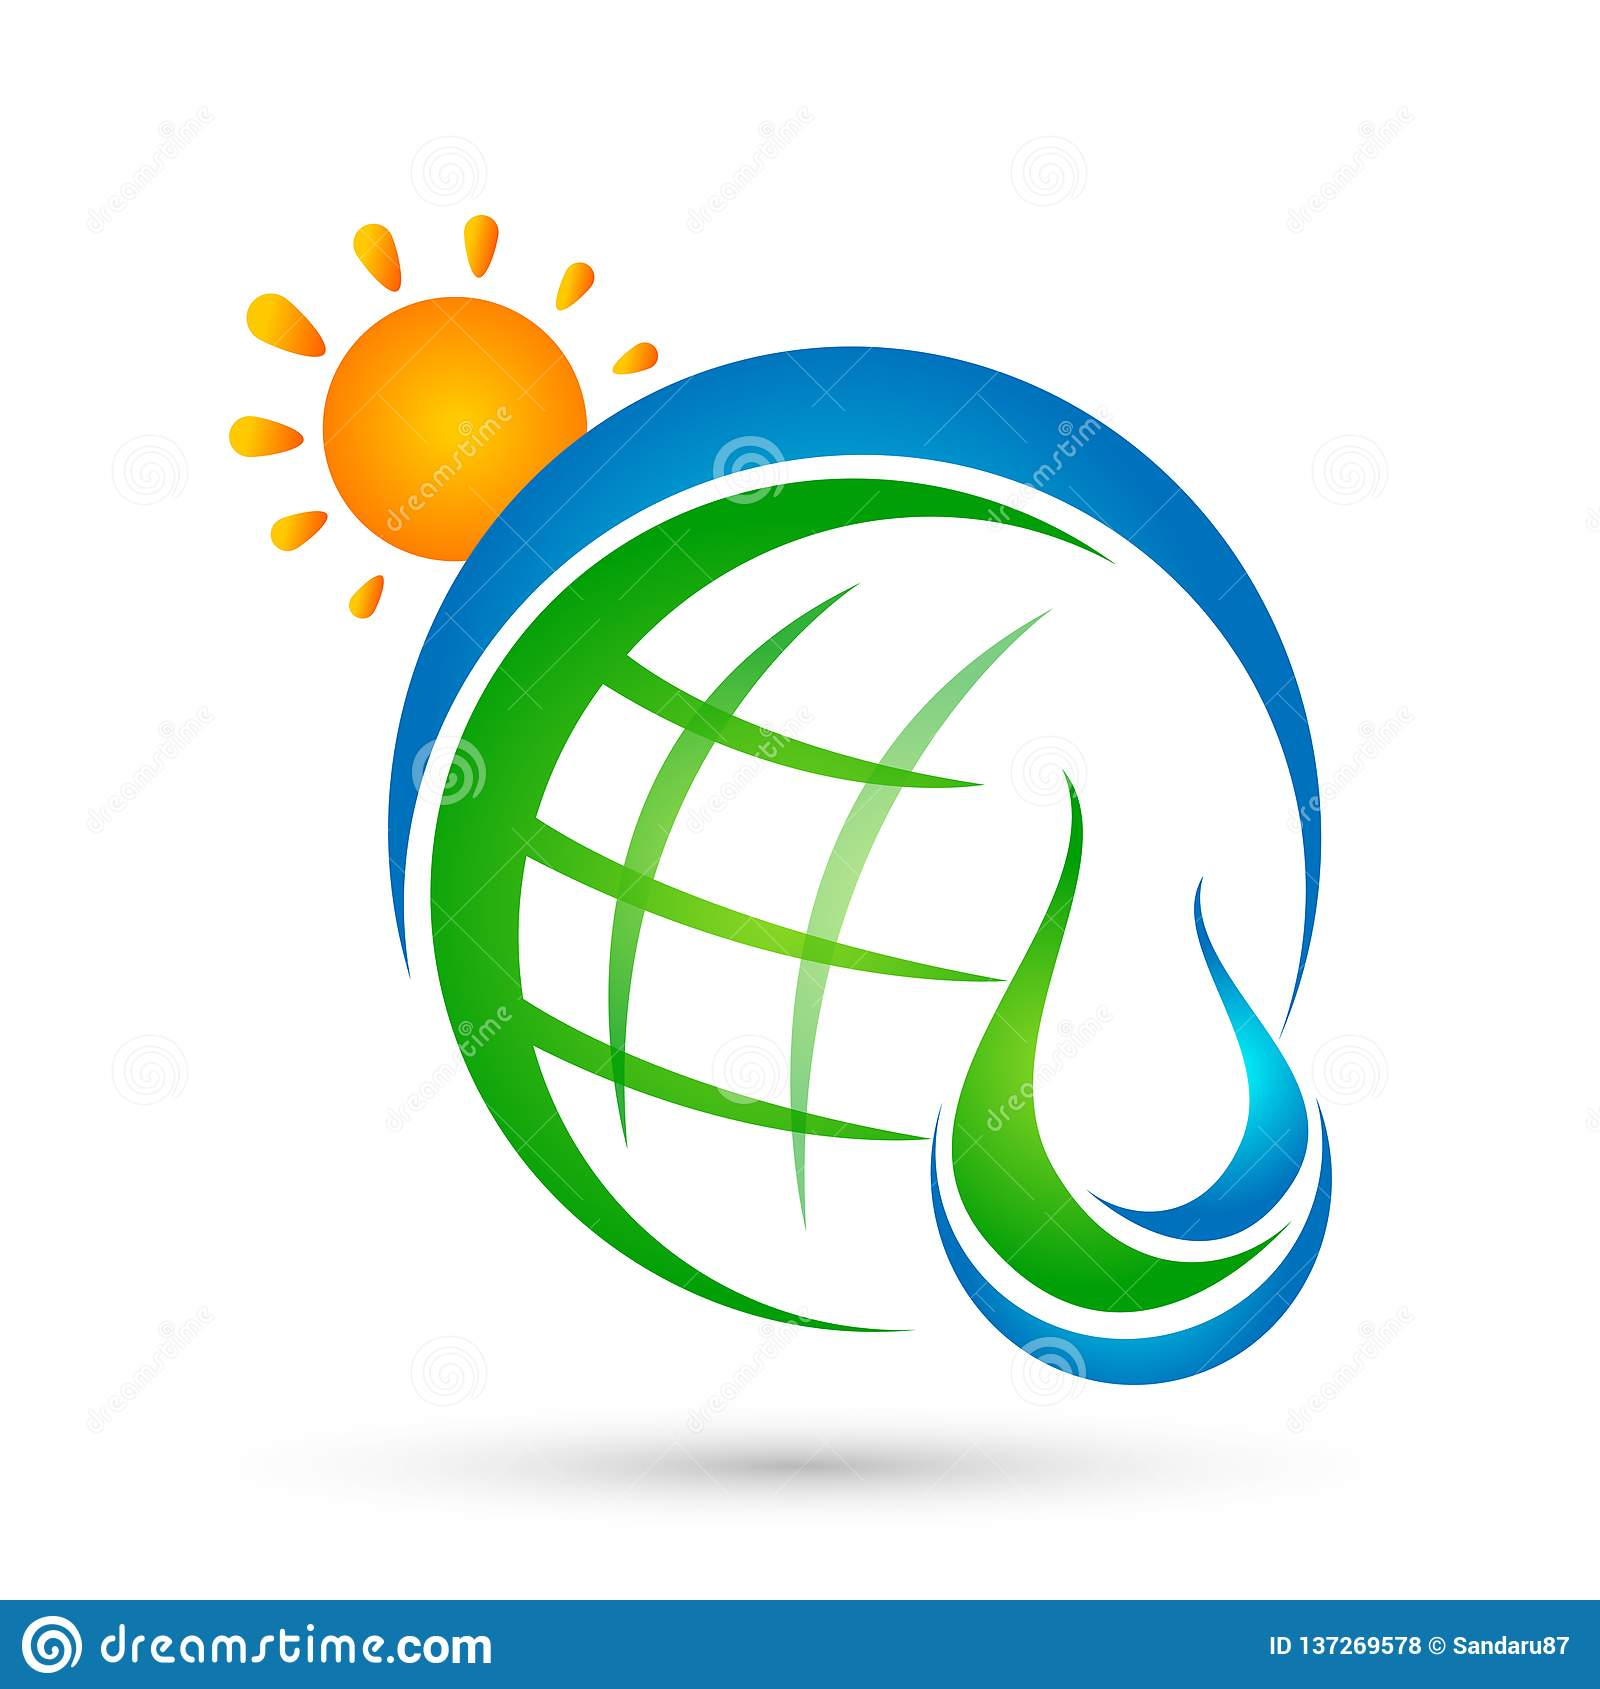 Globe Water drop sun logo concept of water drop with world save earth wellness symbol icon nature drops elements vector design